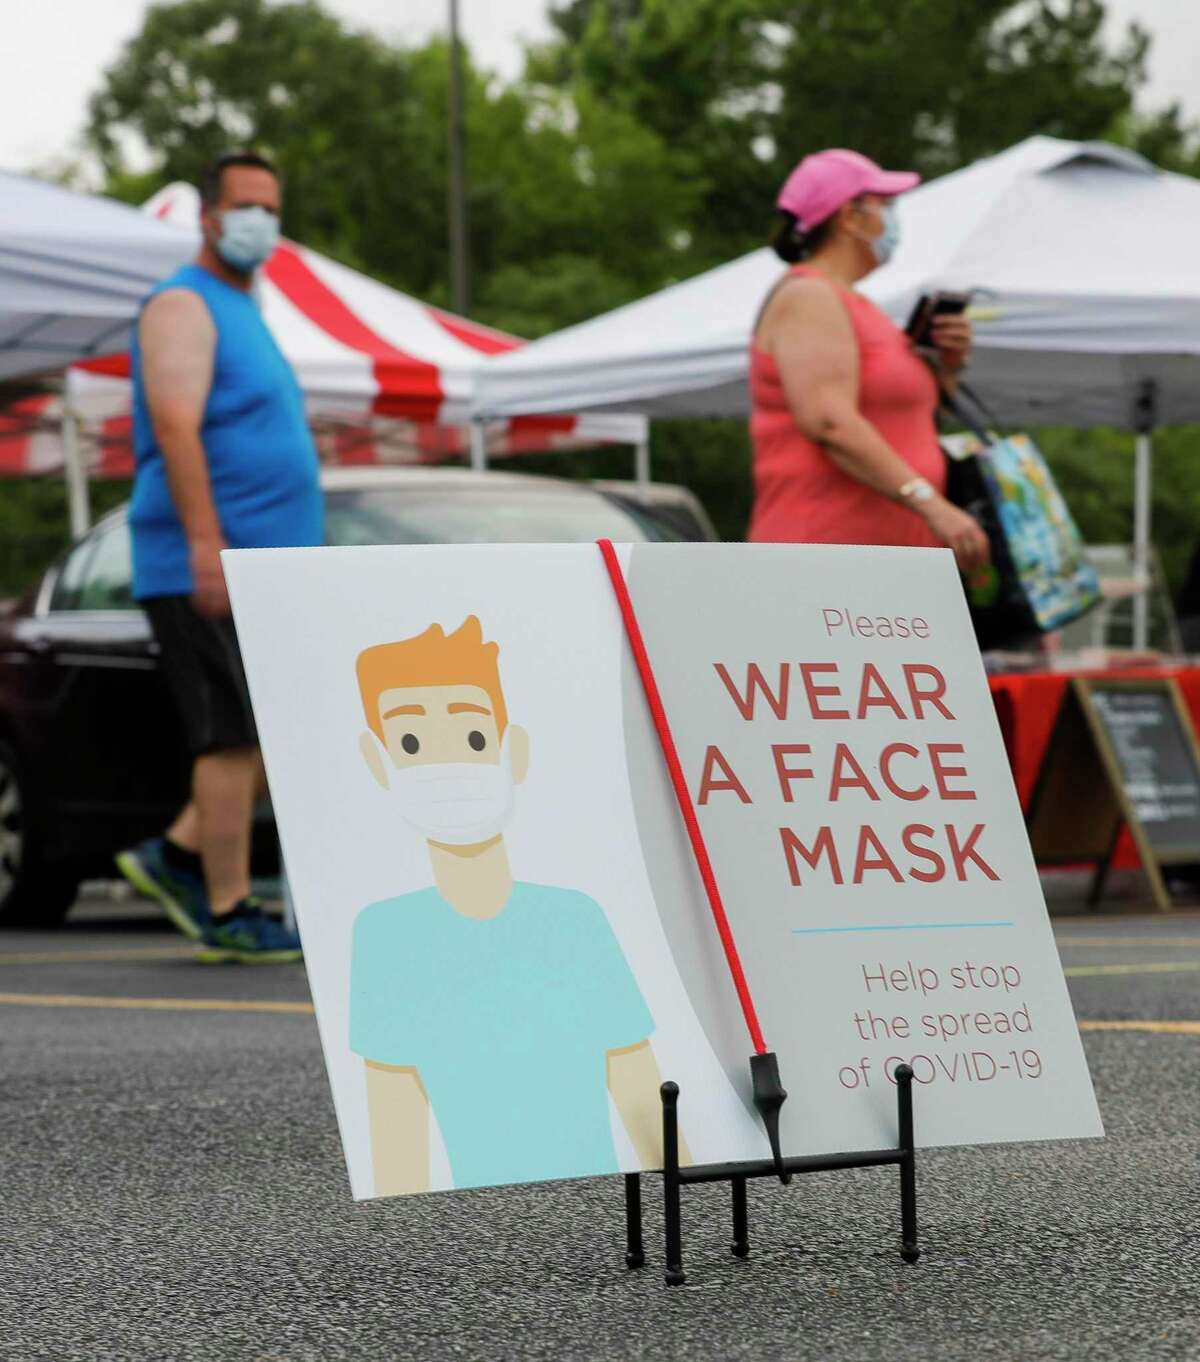 A sign reminds customers to wear a face mask while shopping at The Woodlands Farmers Market, Saturday, May 23, 2020, in The Woodlands.